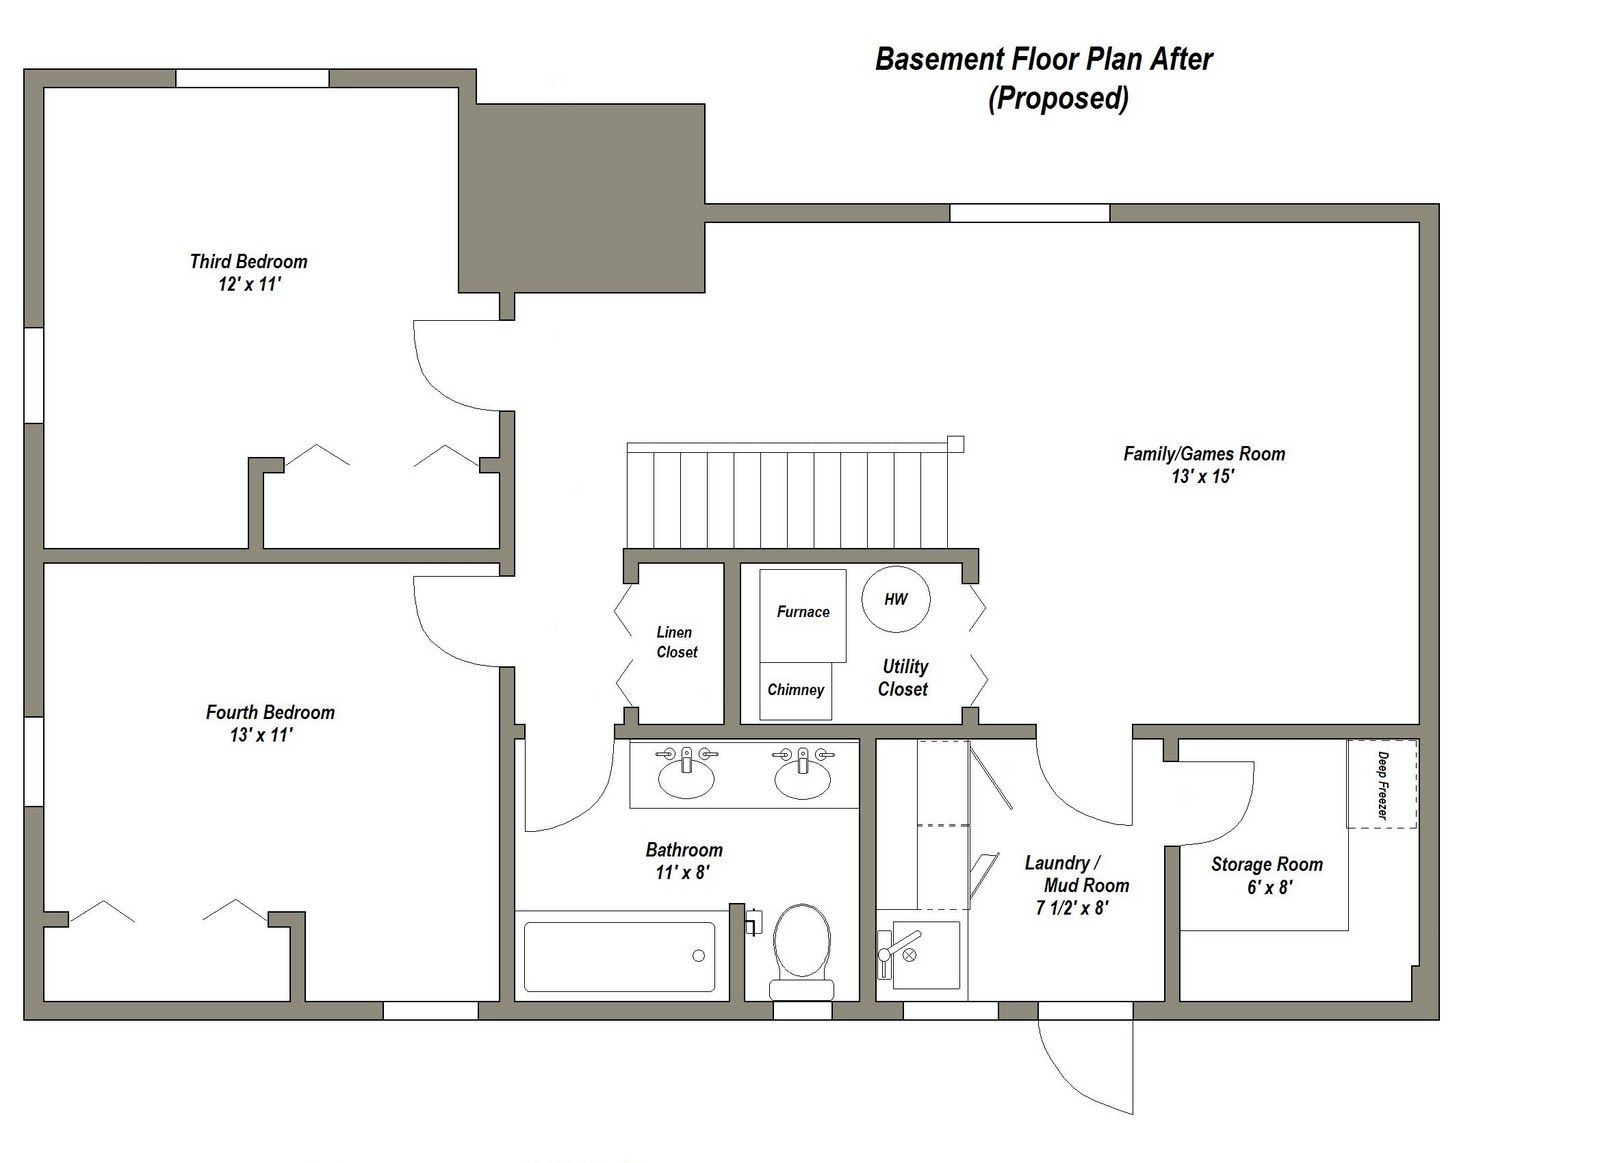 finished basement floor plans finished basement floor plans younger unger - House Plans With Basement